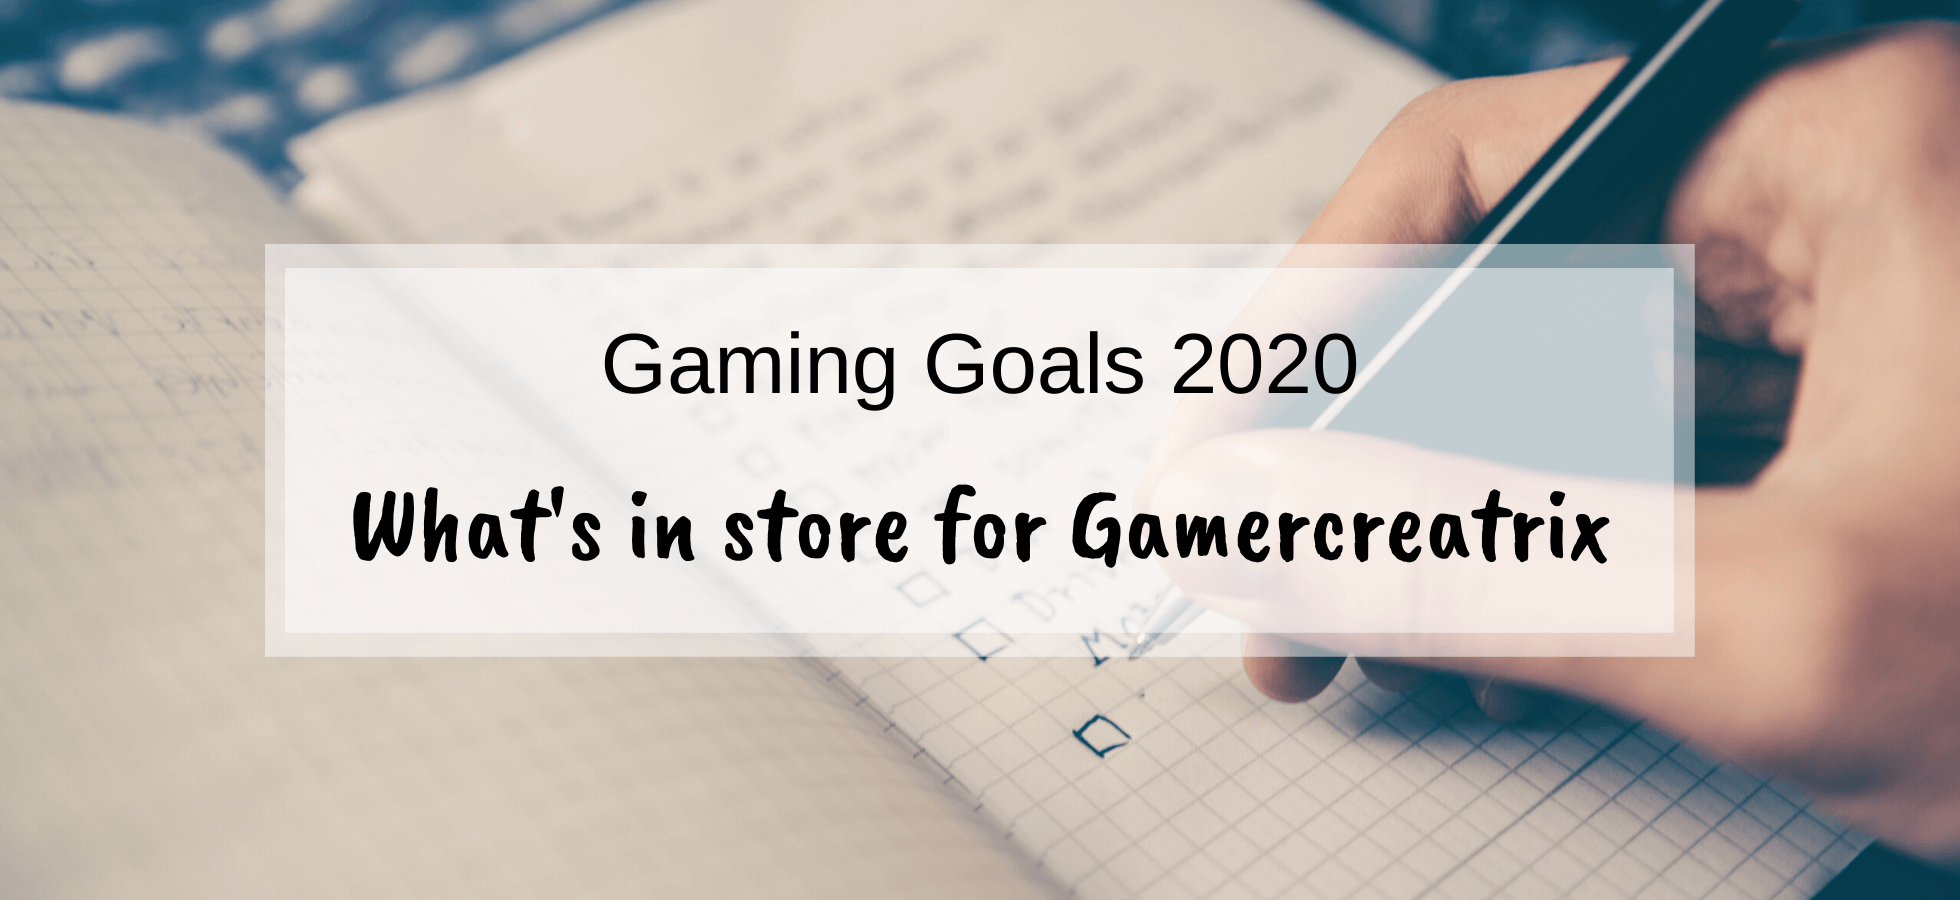 Gaming Goals 2020 – What's in store for Gamercreatrix